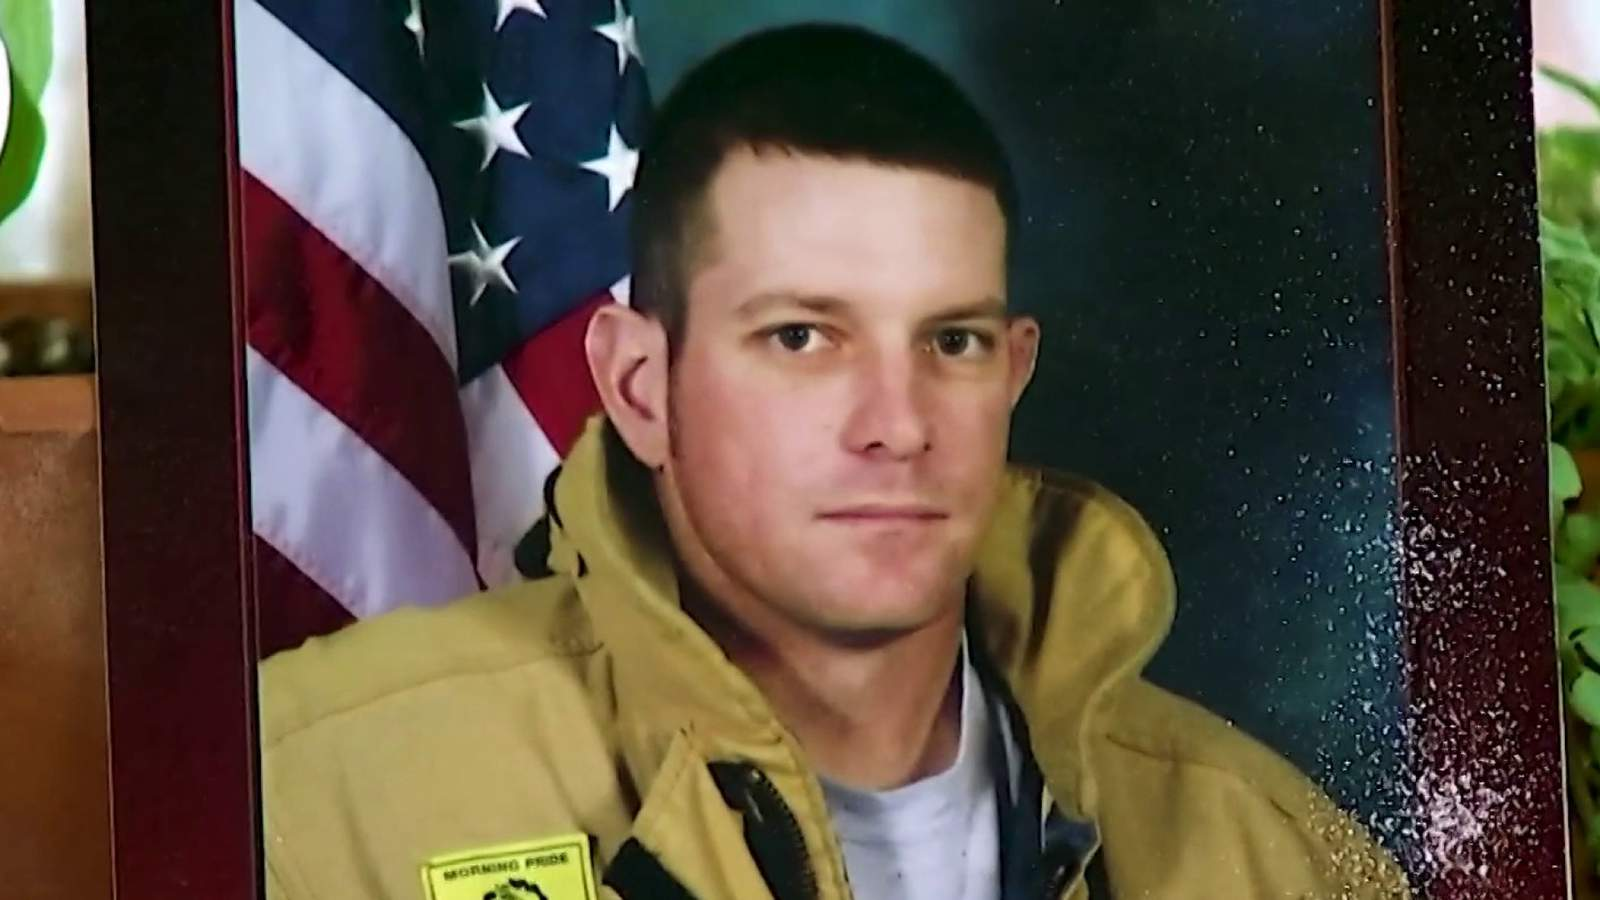 Seminole firefighter dies 23 days after county rejects cancer benefits